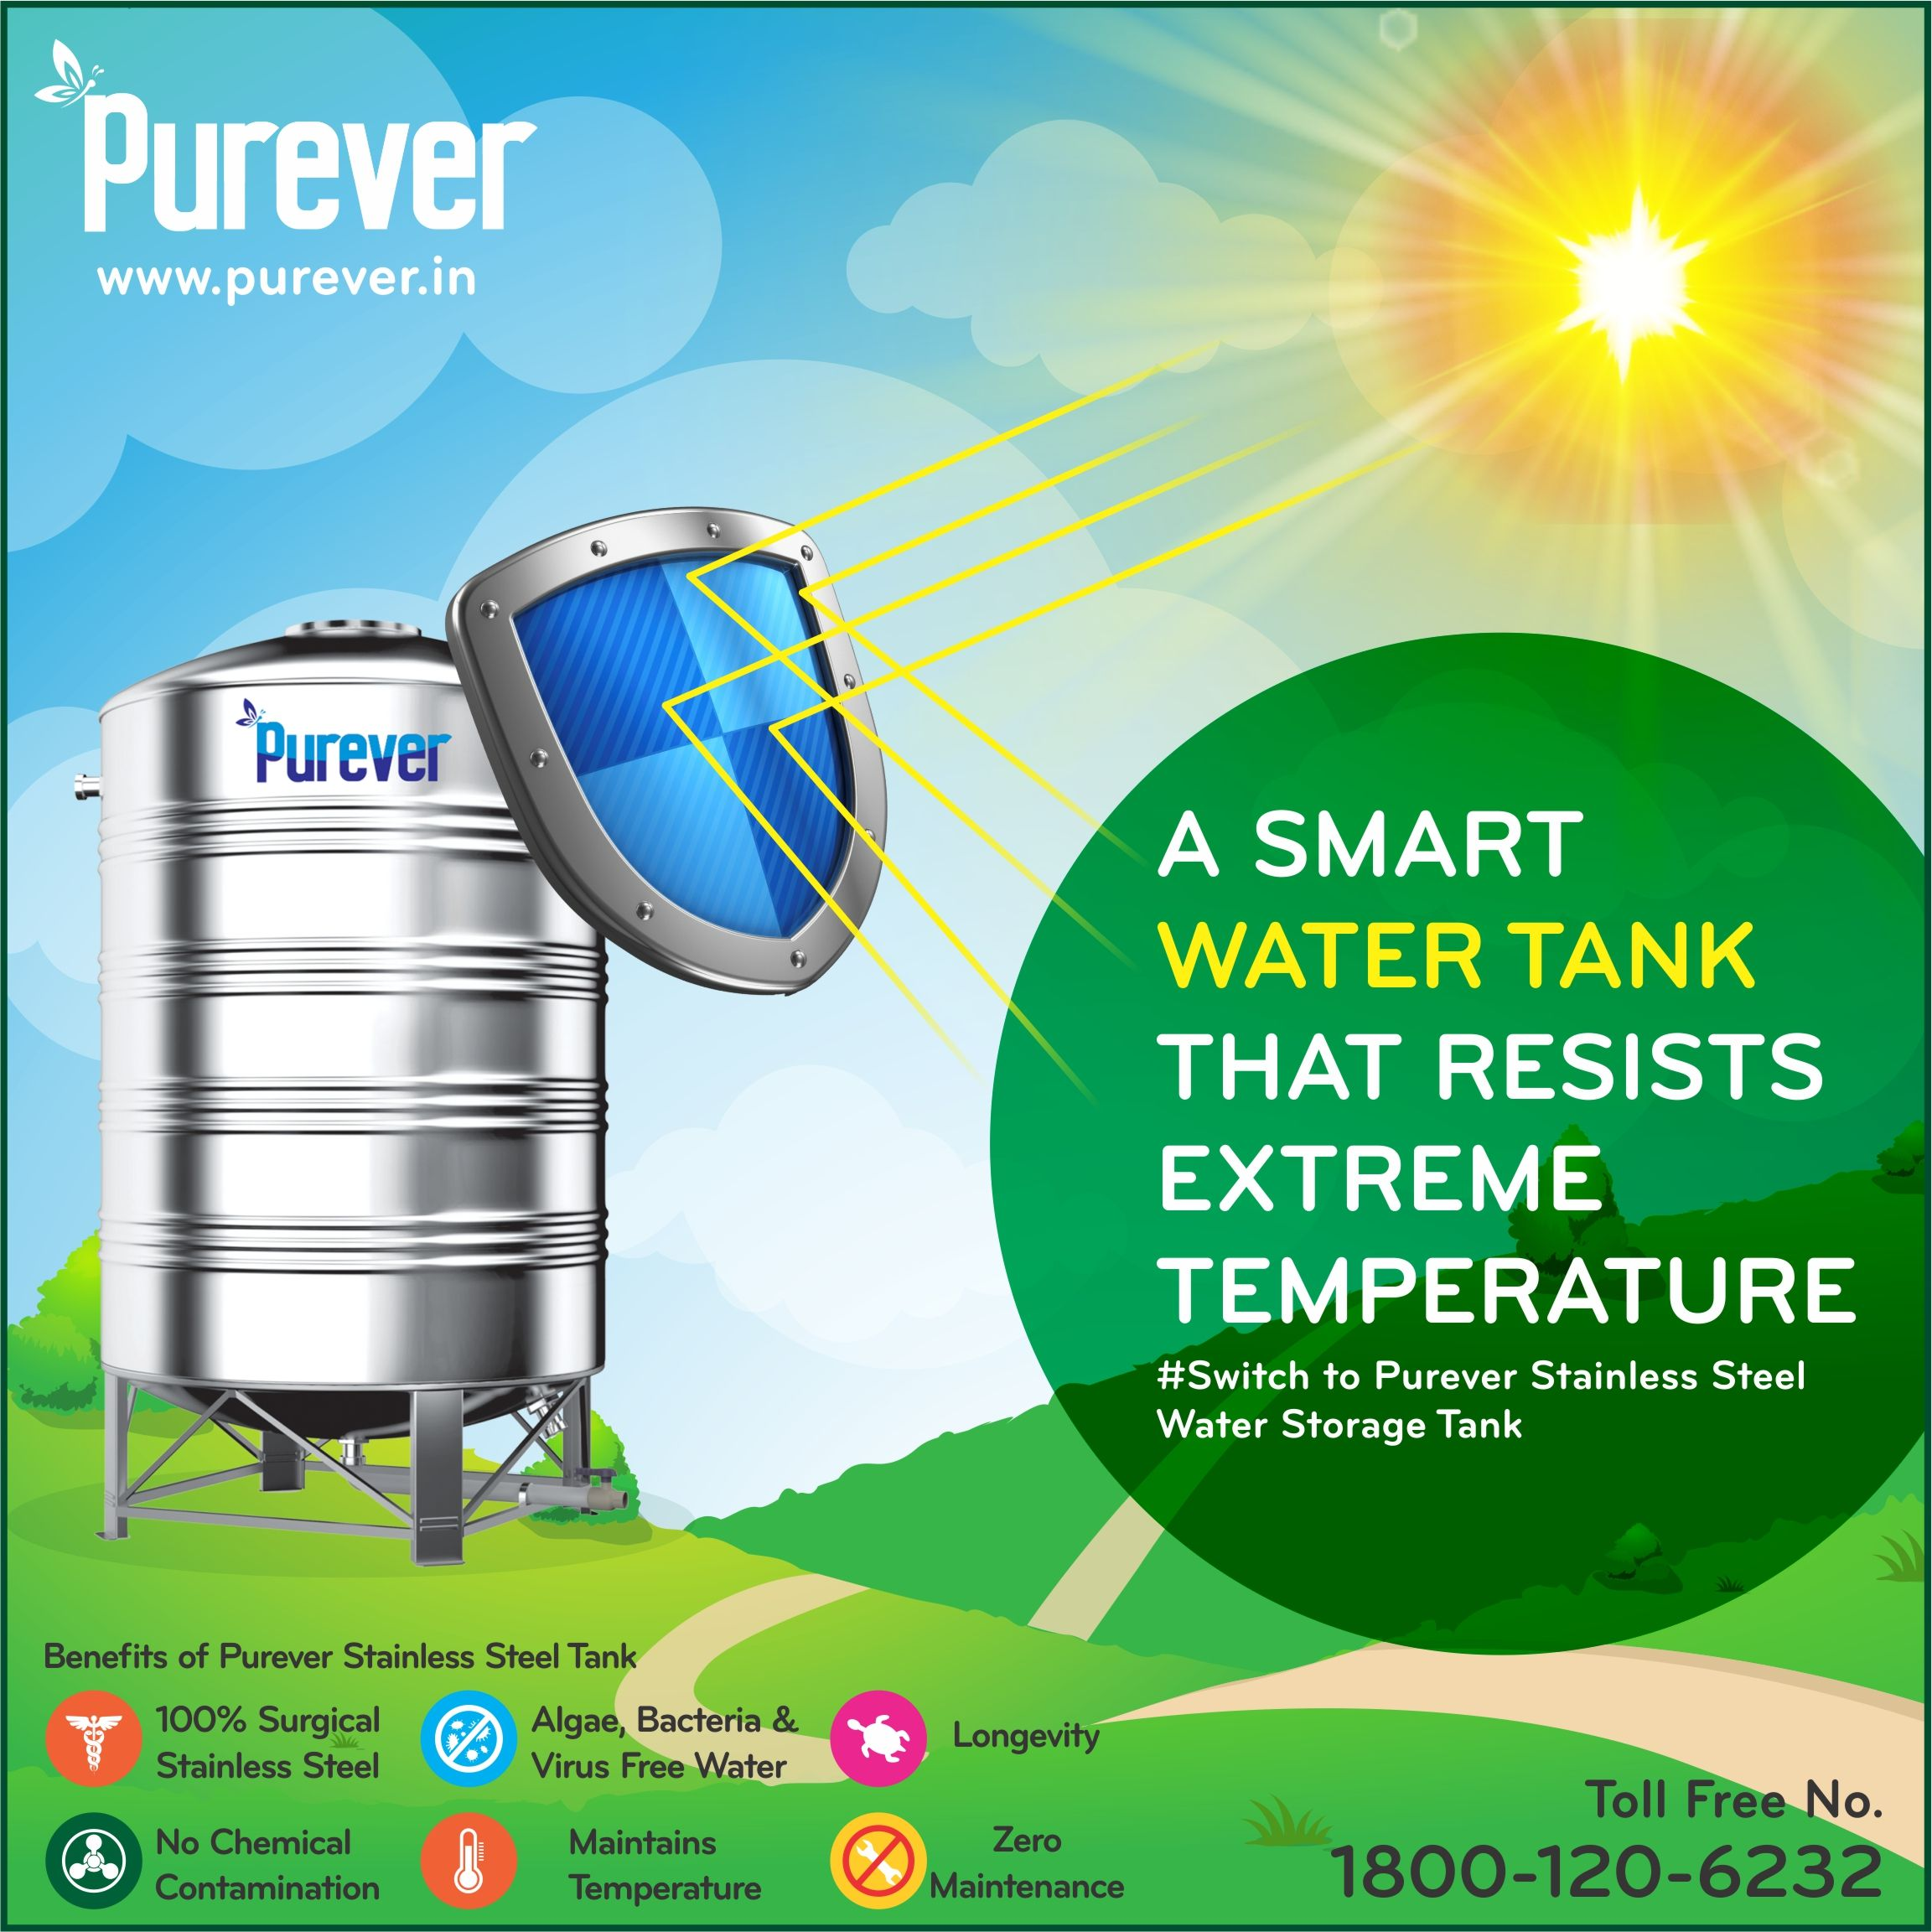 Smart Water Tank Purever Tank Resists Extreme Temperature Switch To Purever Stainless Steel Water Tank Www Purever Water Tank Steel Water Tanks Smart Water